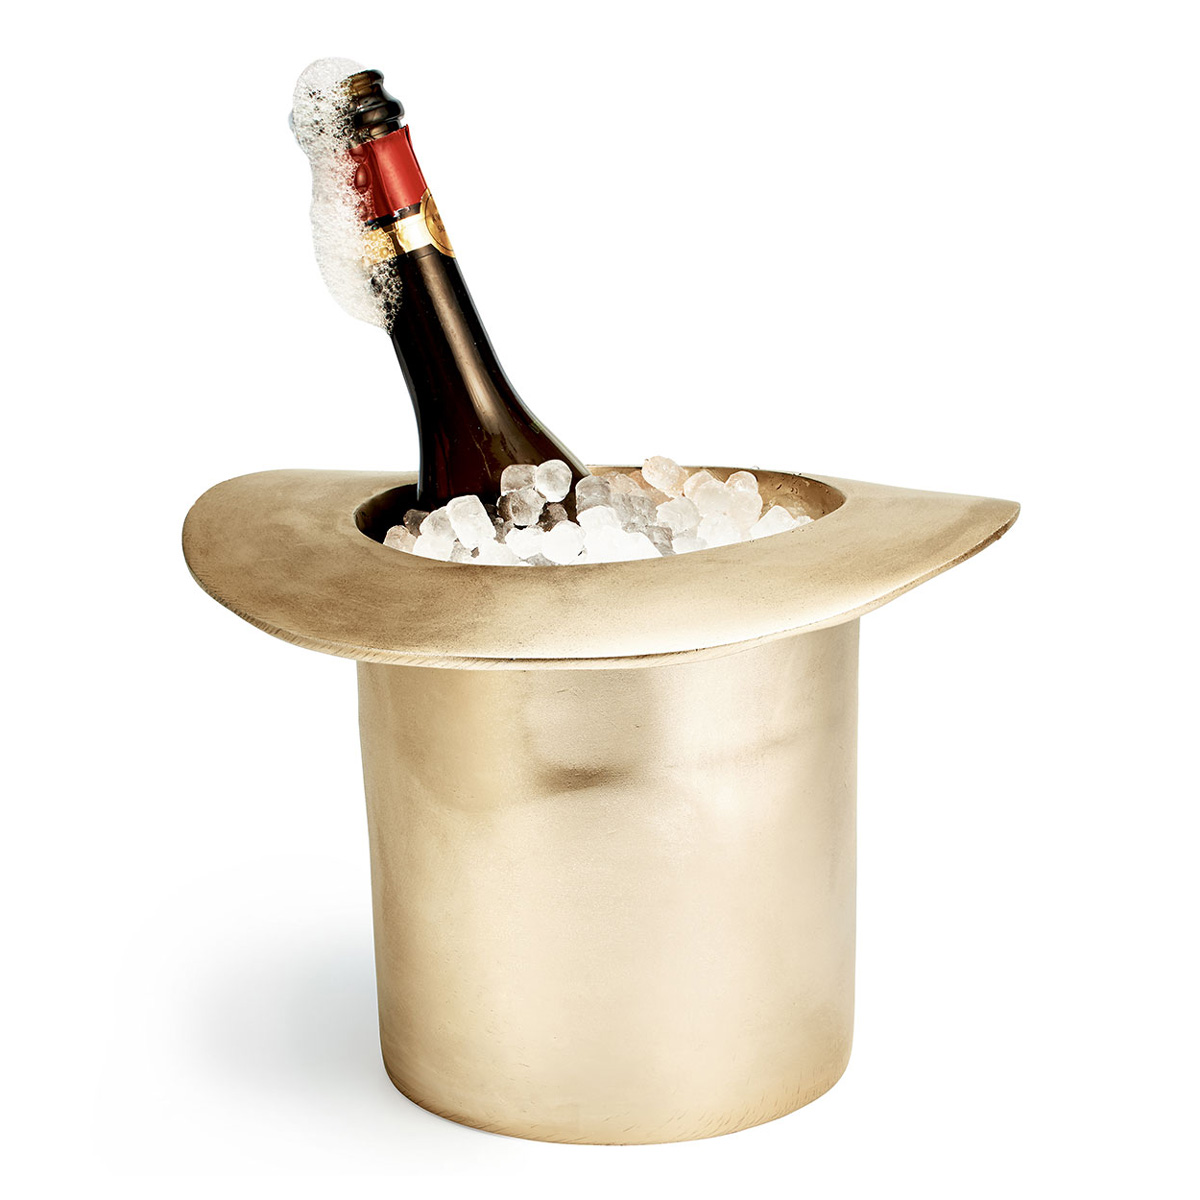 Top Hat Champagne Cooler Ice Bucket The Green Head Awesome Ideas